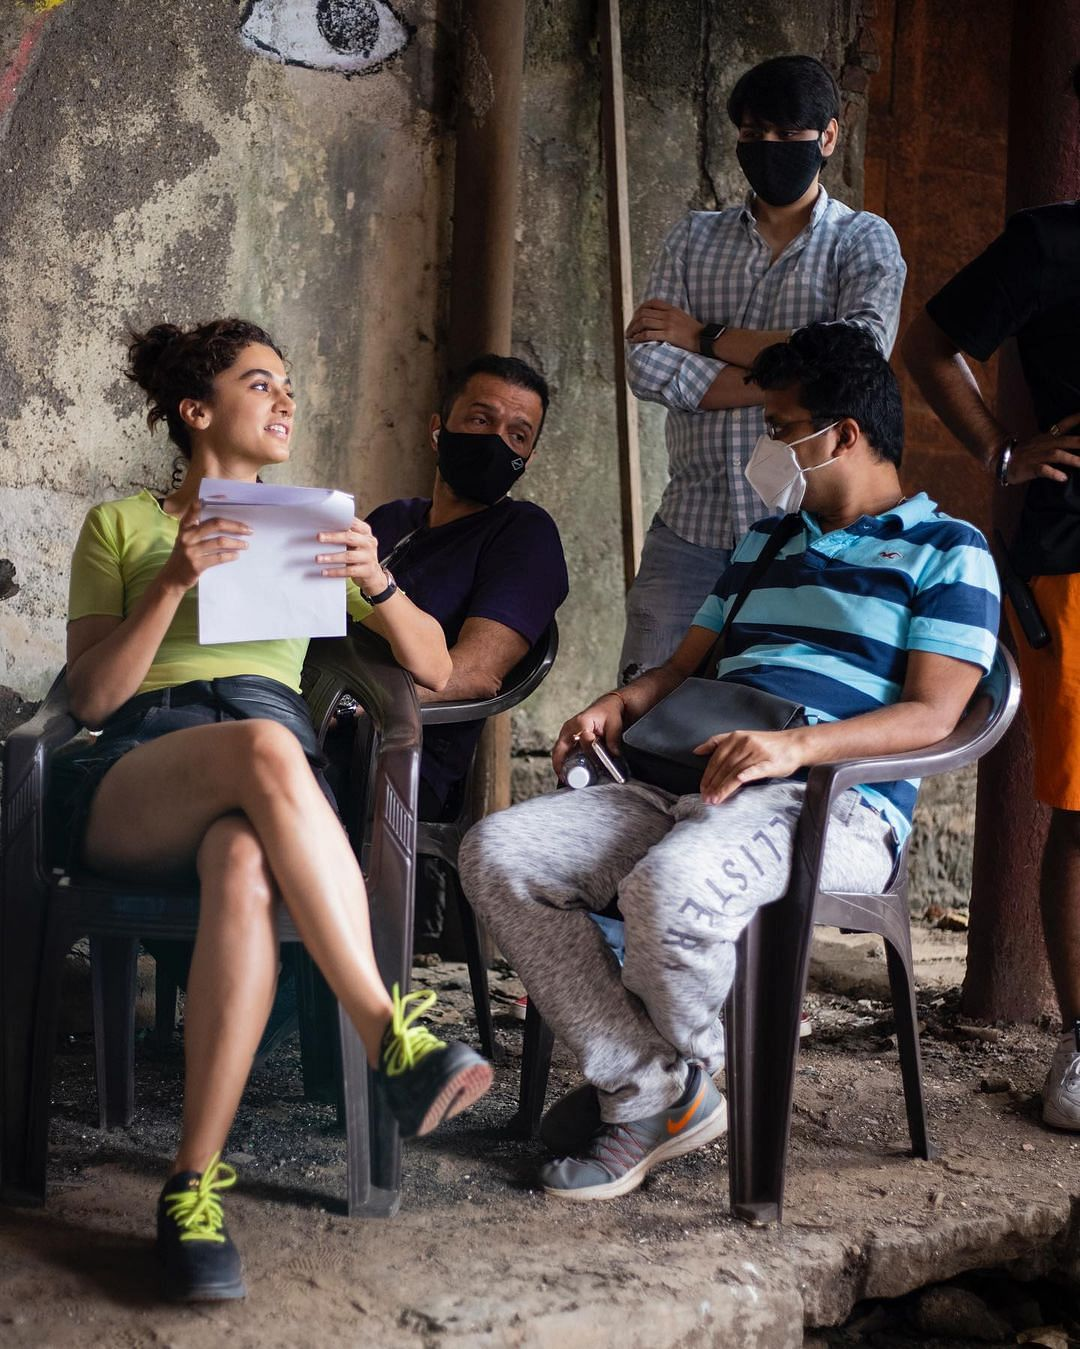 '15-Day Shoot Halt Means Loss of Rs 1,000 Crore for Film Industry'